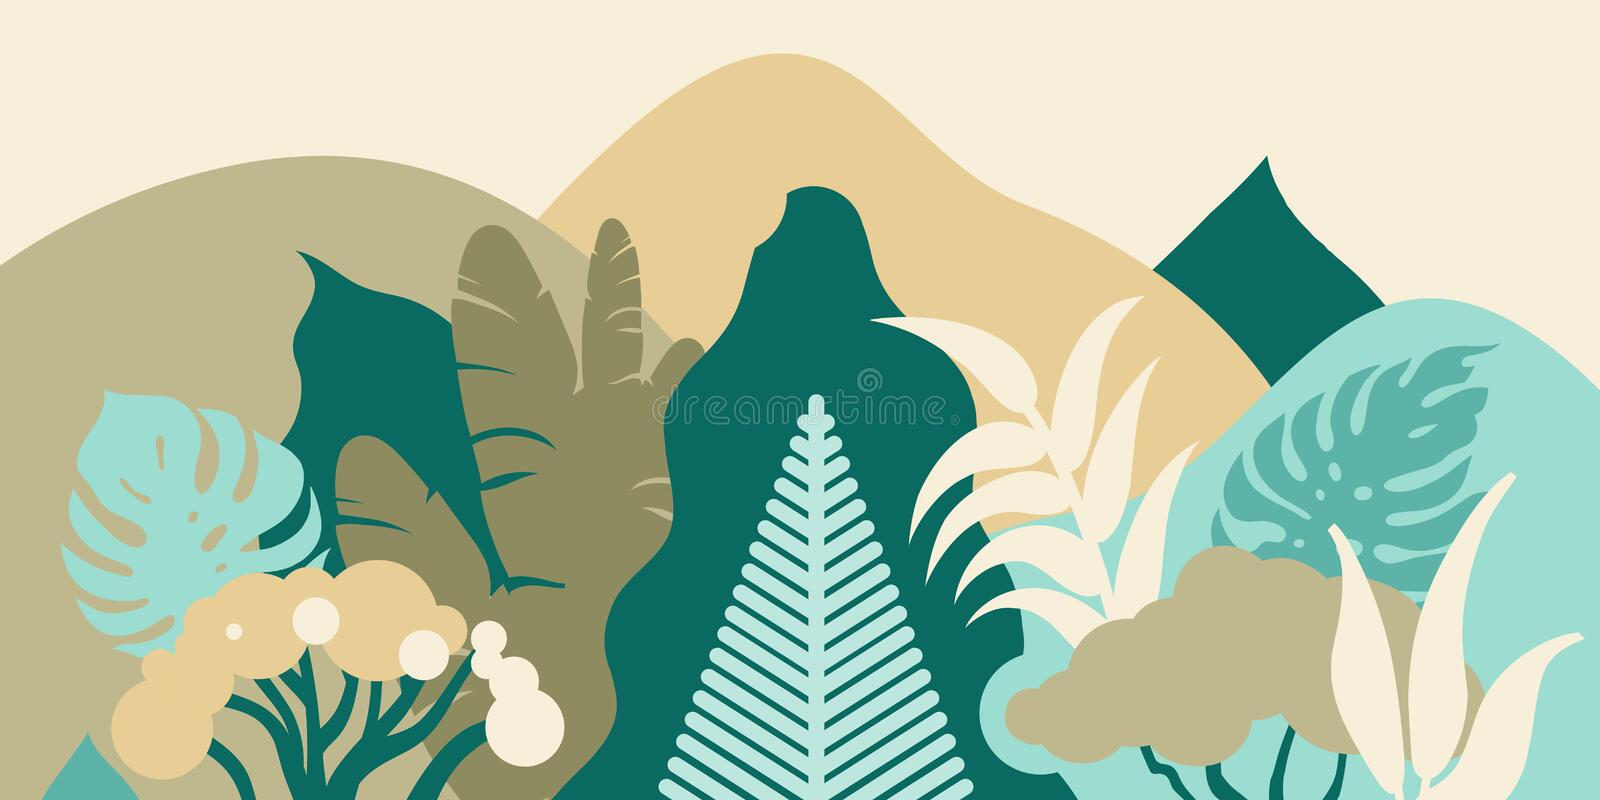 Forest in the mountains with tropical plants. Landscape for tourism. Preservation of the environment. Park, outdoor space. Vector illustration vector illustration